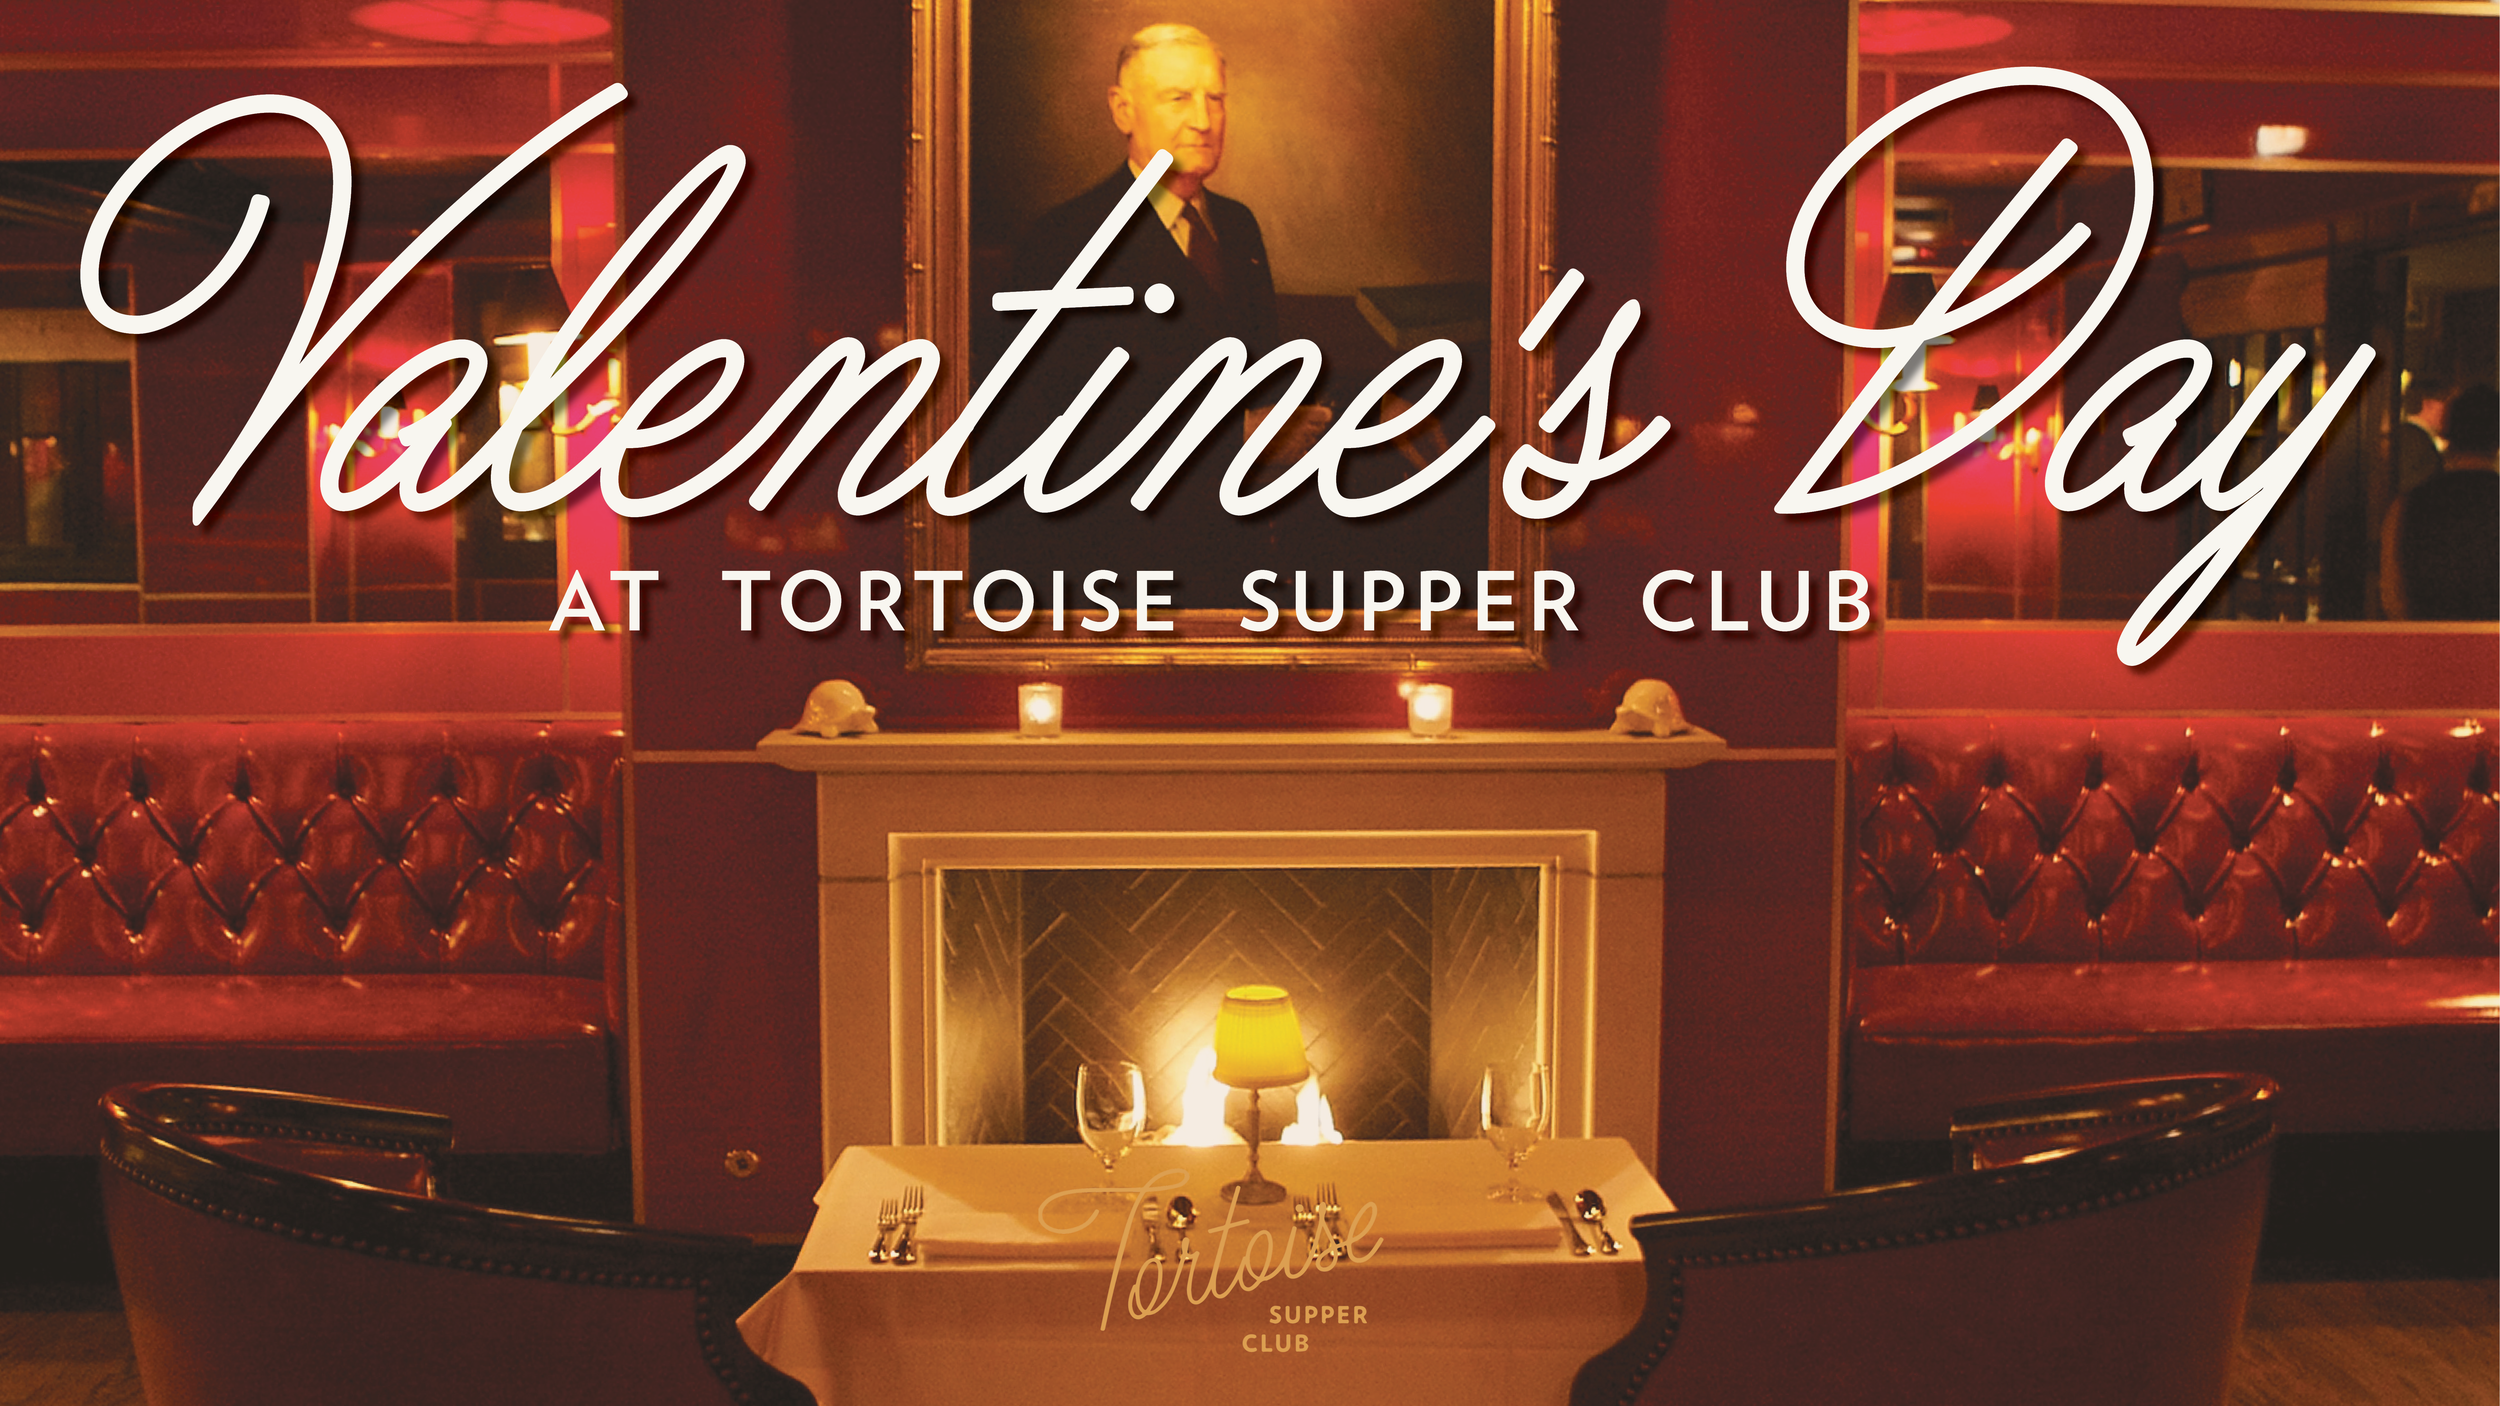 Valentine's Day EVENT Tortoise Supper Club